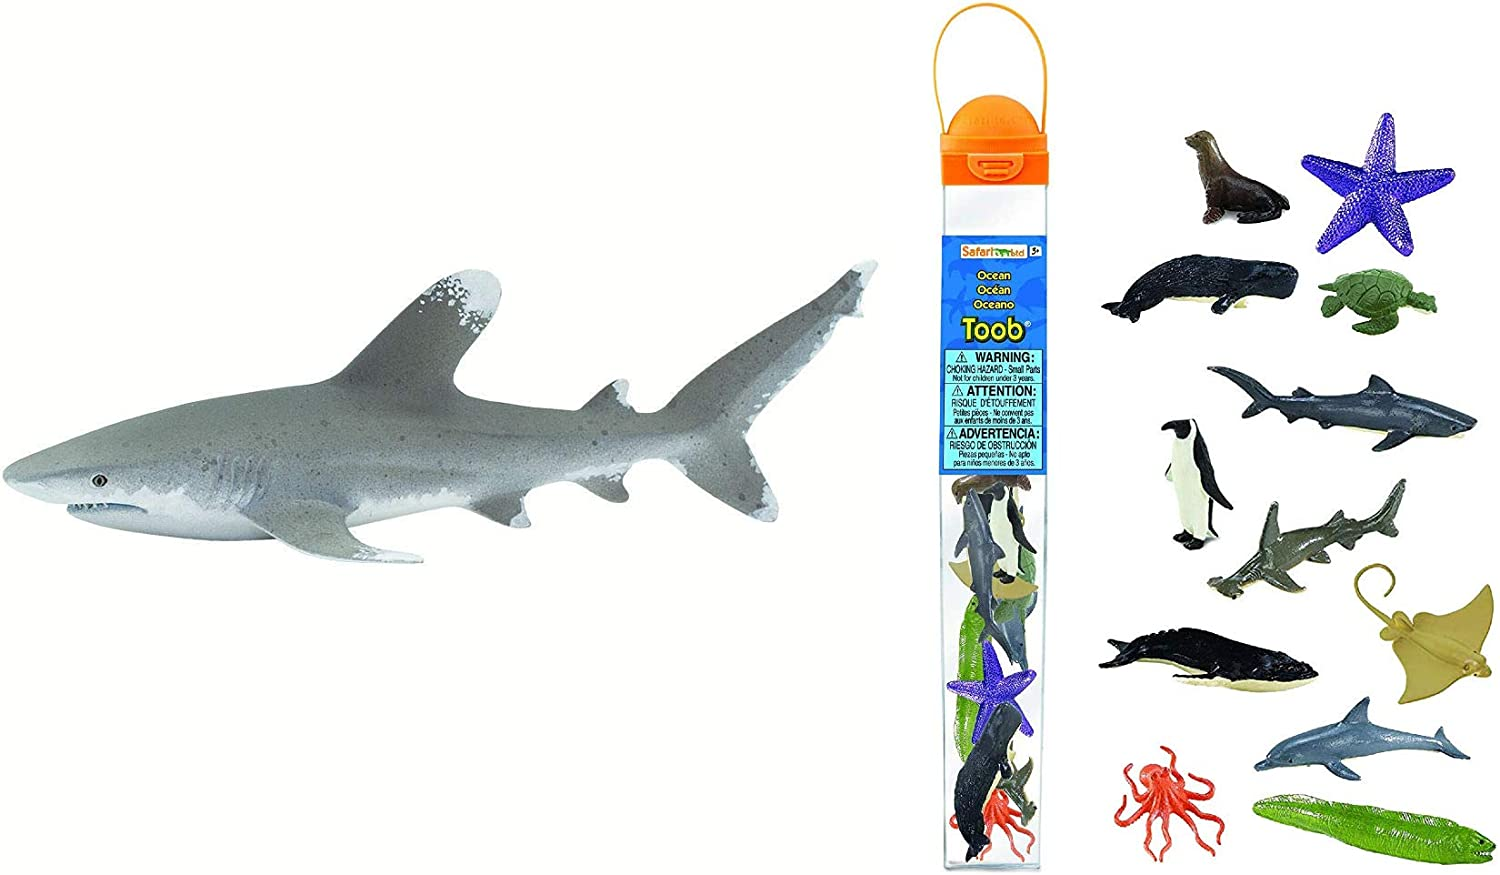 Safari Ltd. Wild Safari Sea Life- Oceanic Whitetip Shark Toy Figurine Bundled with Safari Ltd. Ocean TOOB with 12 Different Figurine Models Included- Quality Constructed Toy Figurine Models (Ages 3+)